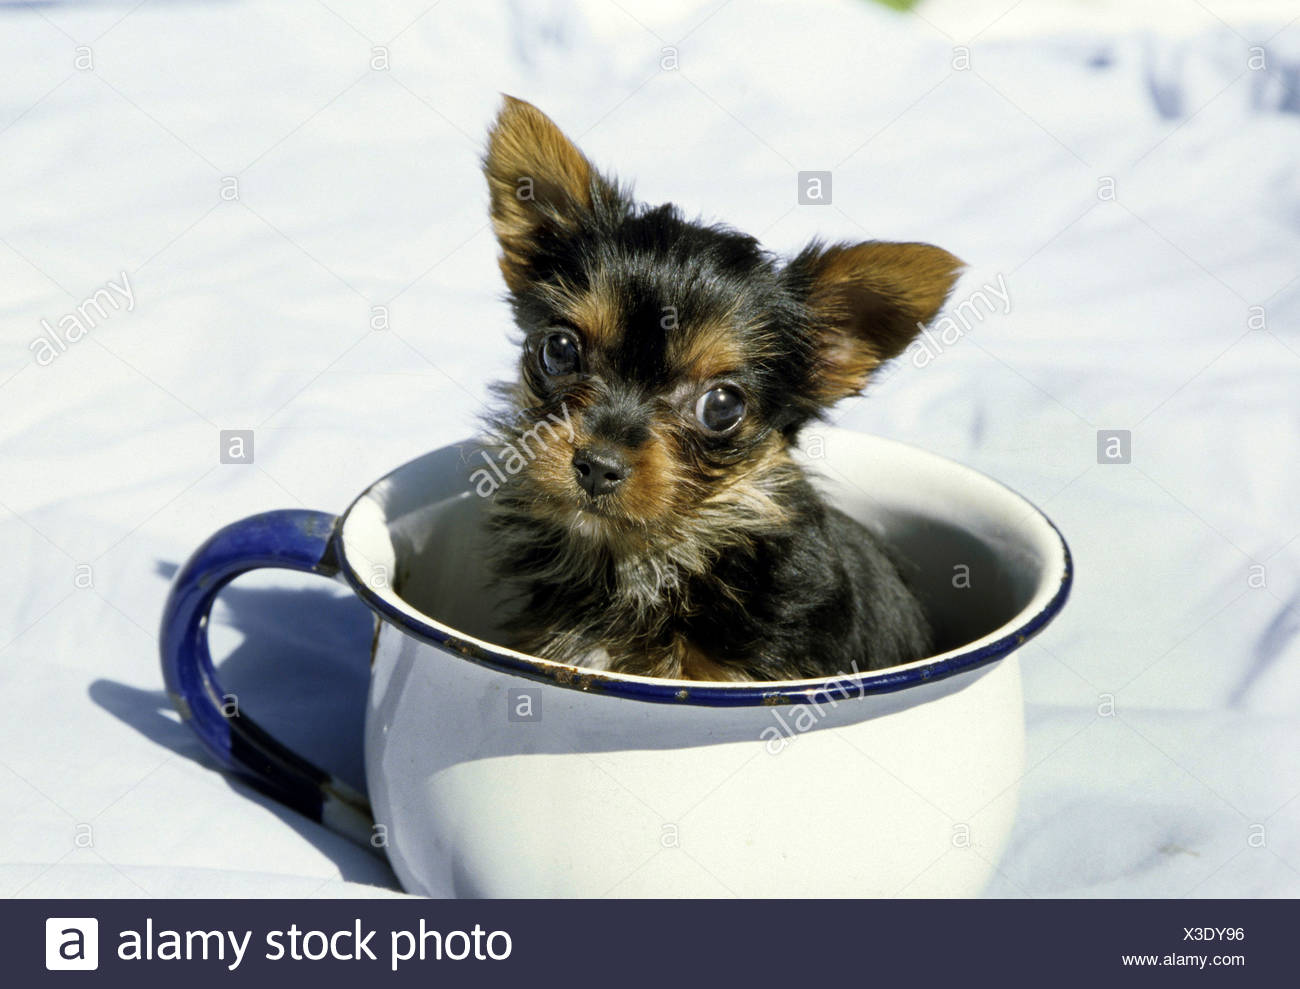 Yorkshire Terrier Puppy In A Tea Cup Stock Photo Alamy